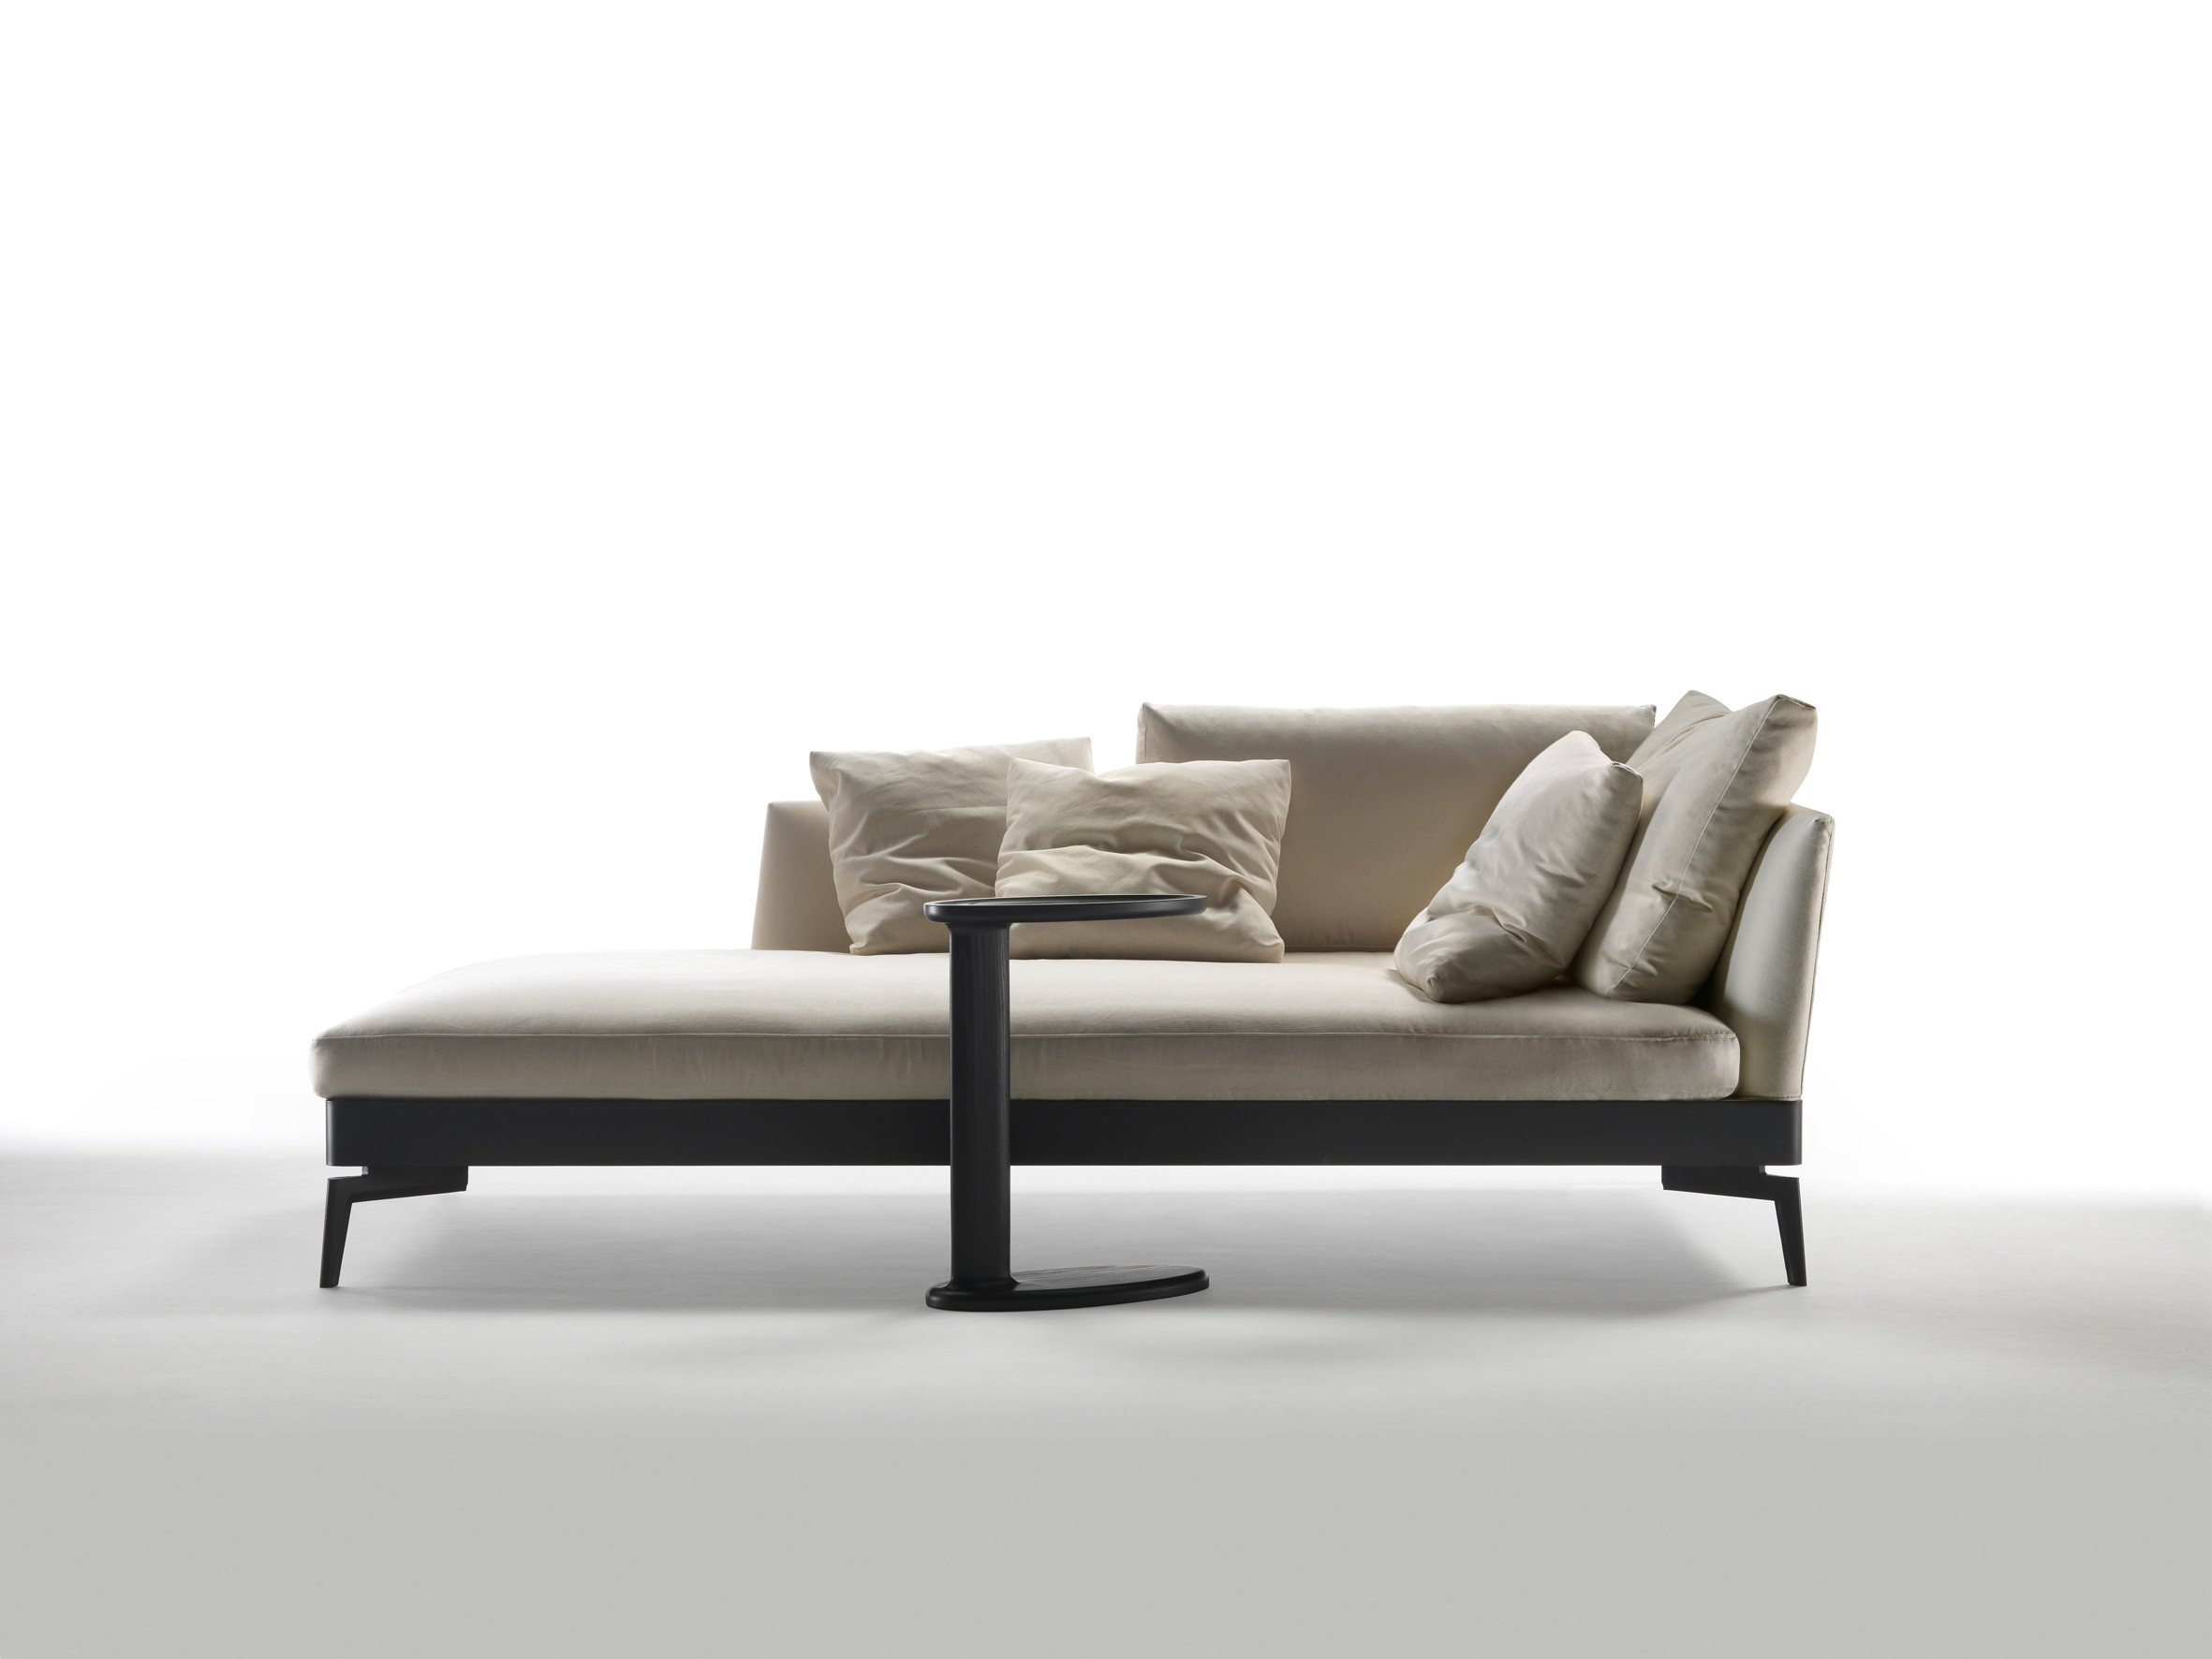 Groundpiece Sofas Sectional Sofas Feelgood - Sofabeds And Chaises - Fanuli Furniture